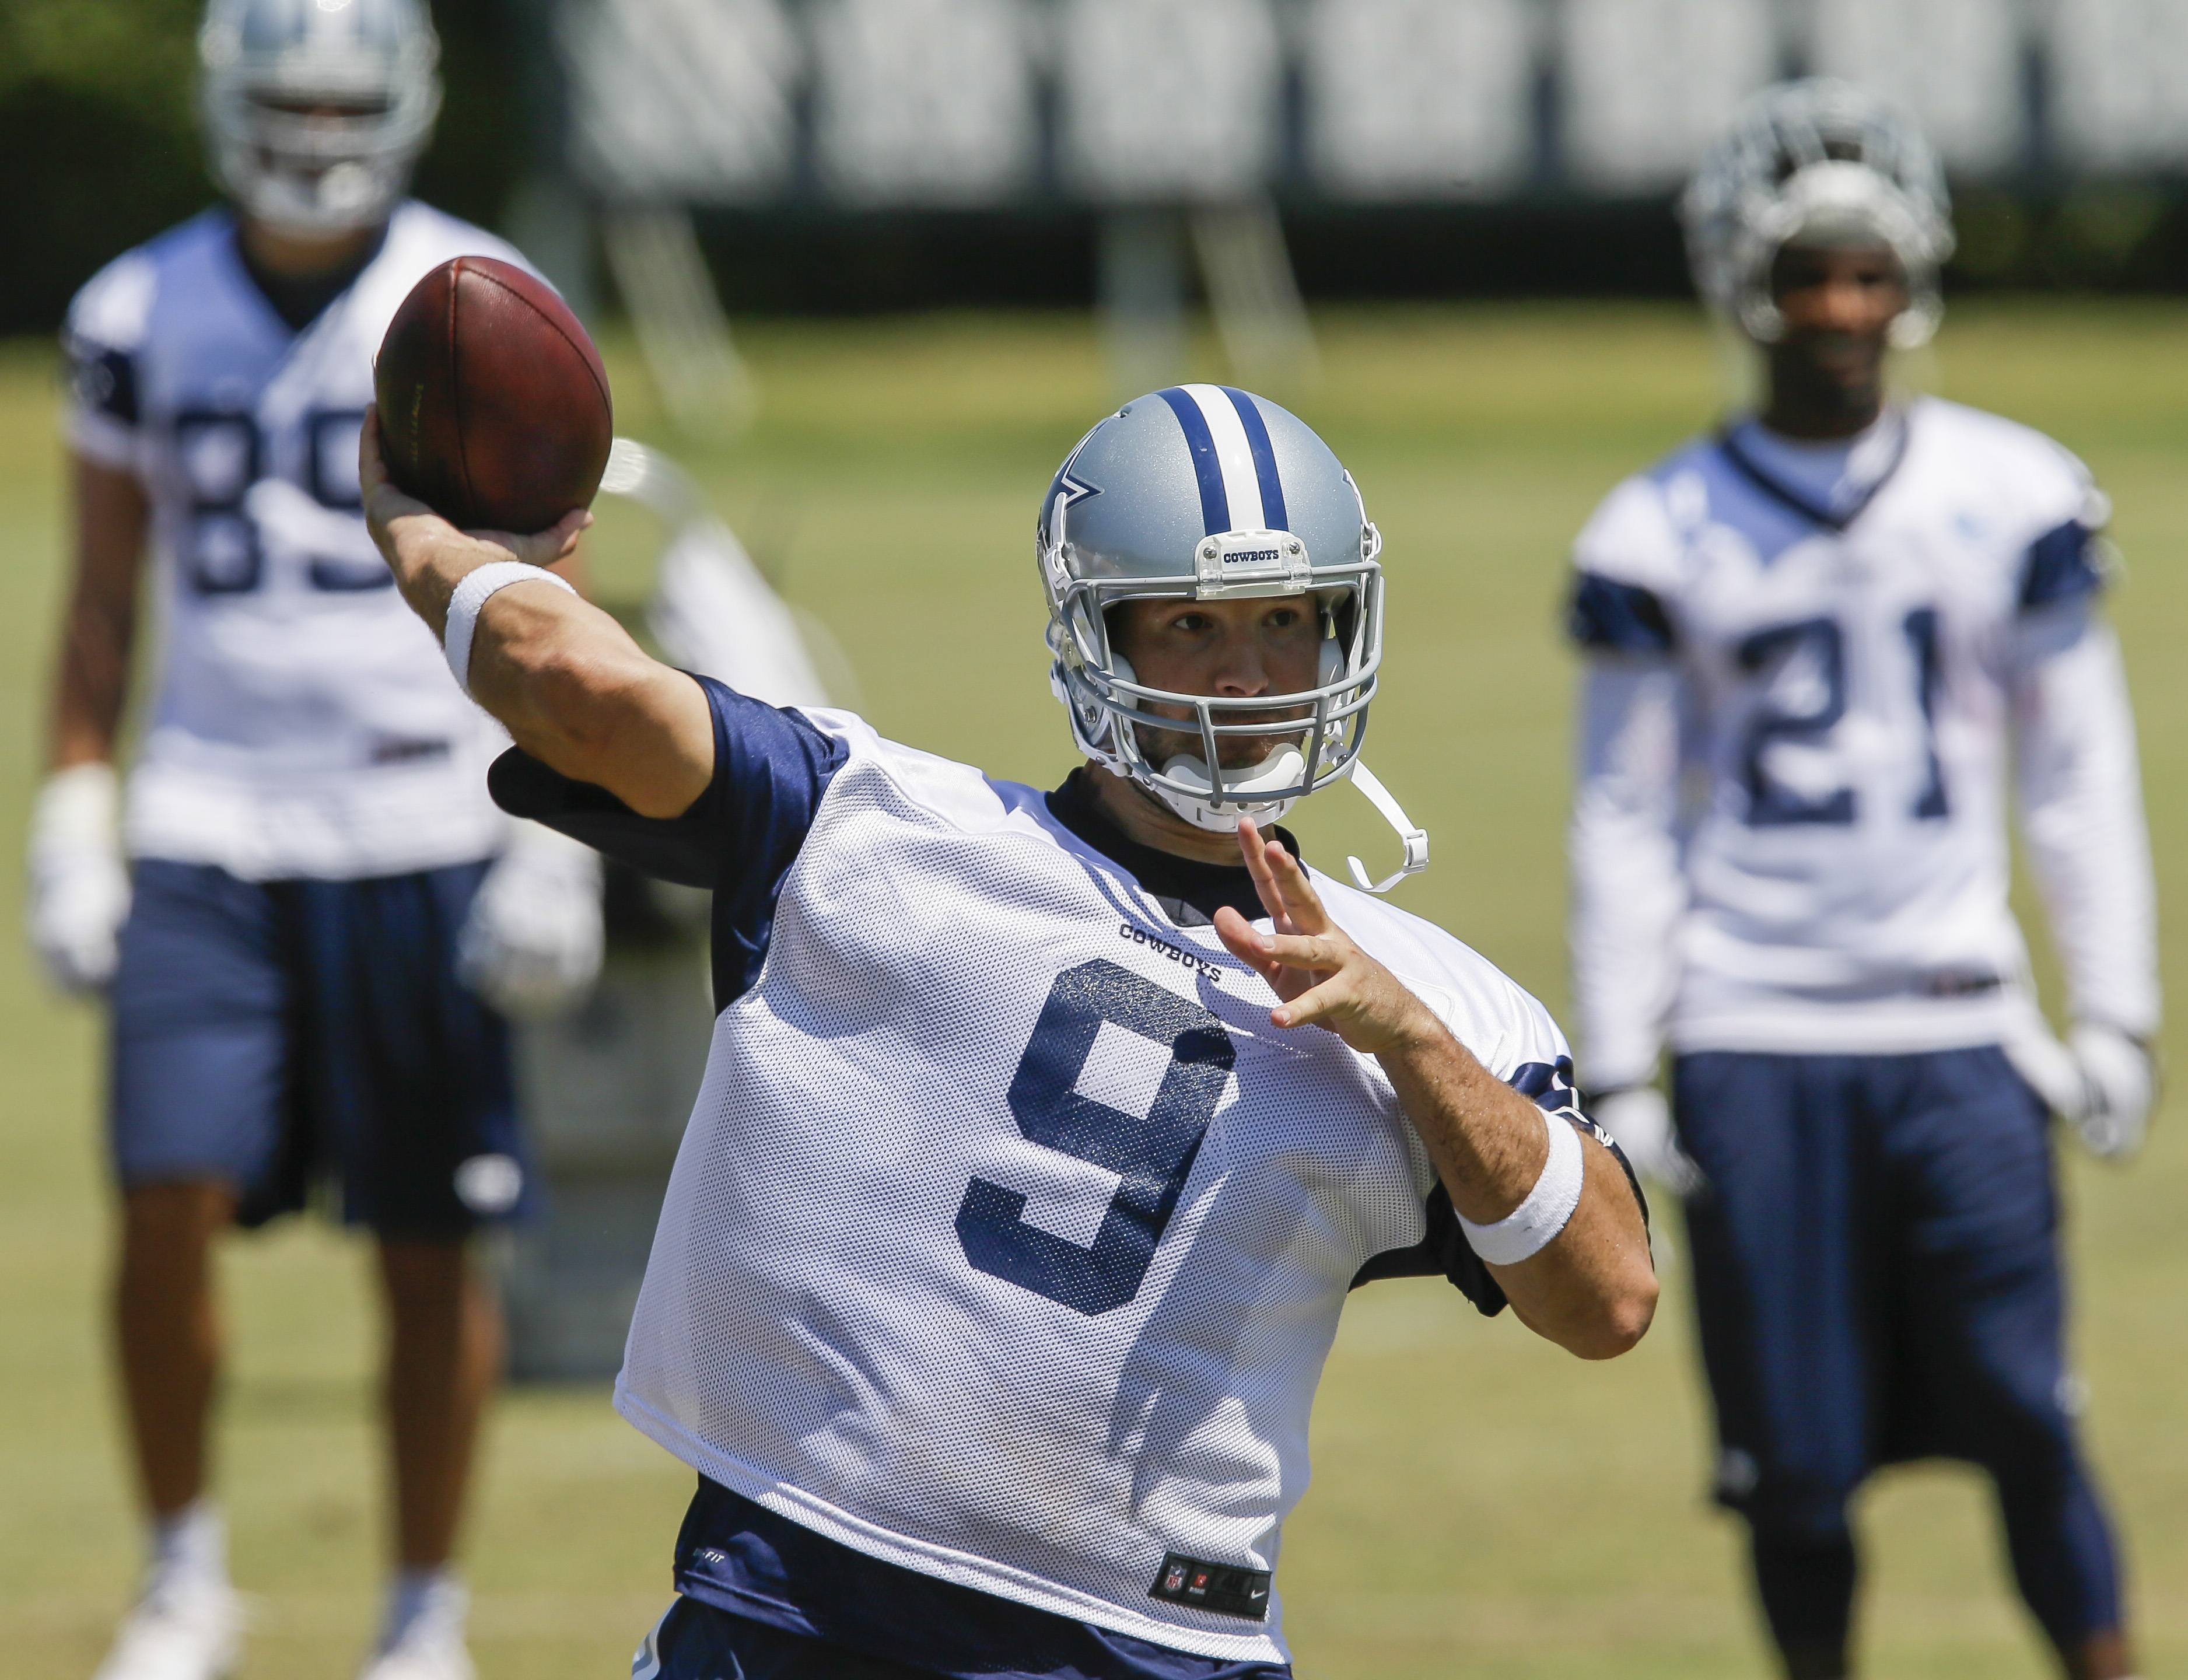 Dallas Cowboys quarterback Tony Romo throws a pass during an NFL football organized activity, Wednesday, June 10, 2015, in Irving, Texas. (AP Photo/Tim Sharp)